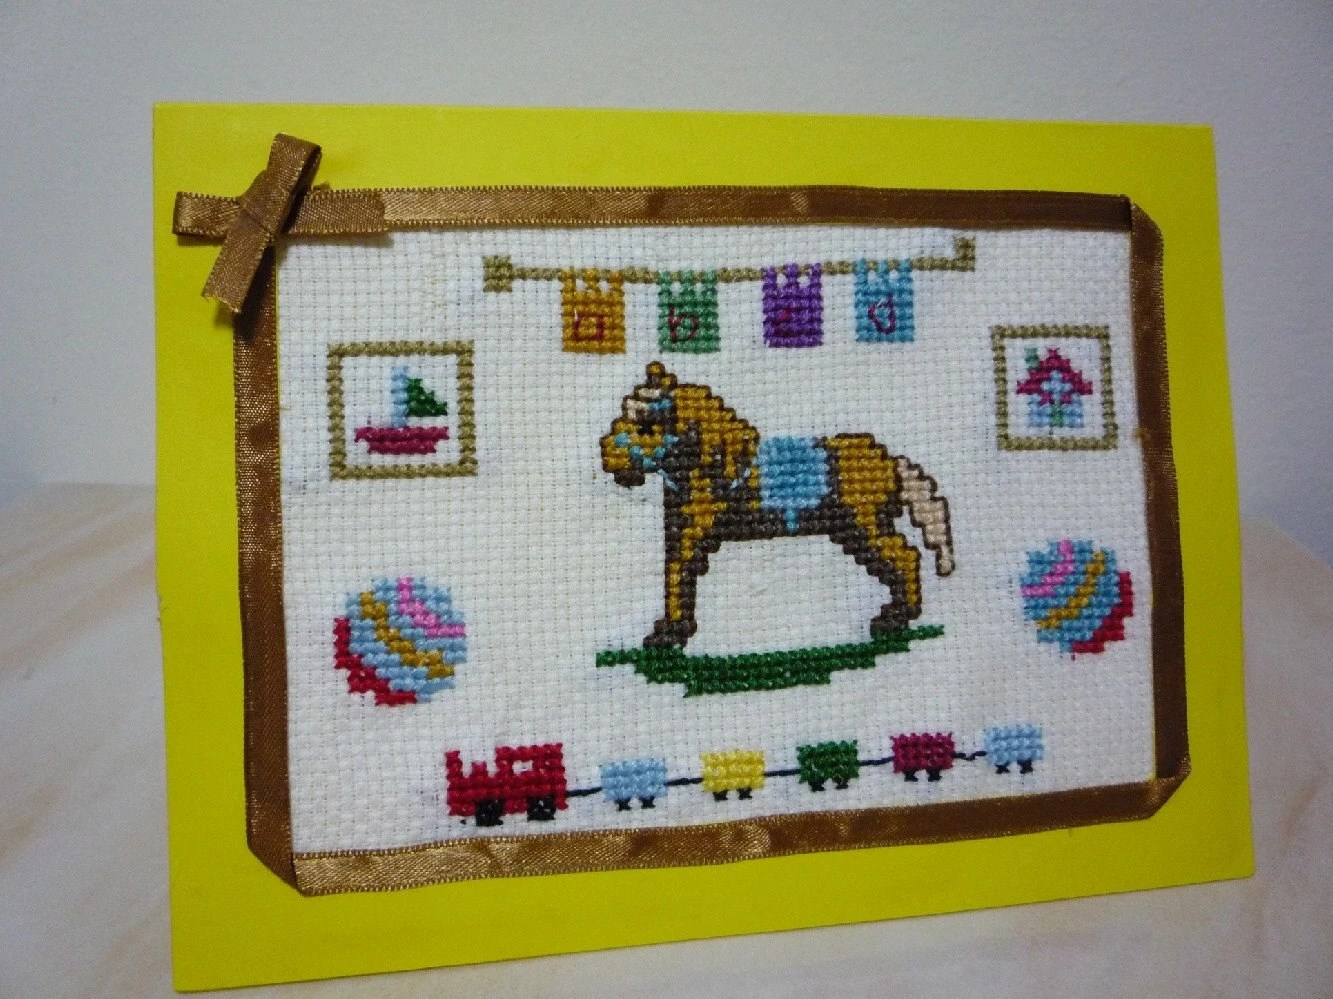 Crafttreasures cross-stitch design will bring any child into their own imaginary American Wild West.  With a rocking horse and train, all your little cowboy needs is a 10-gallon hat!  See more at http://www.etsy.com/shop.php?user_id=6979186